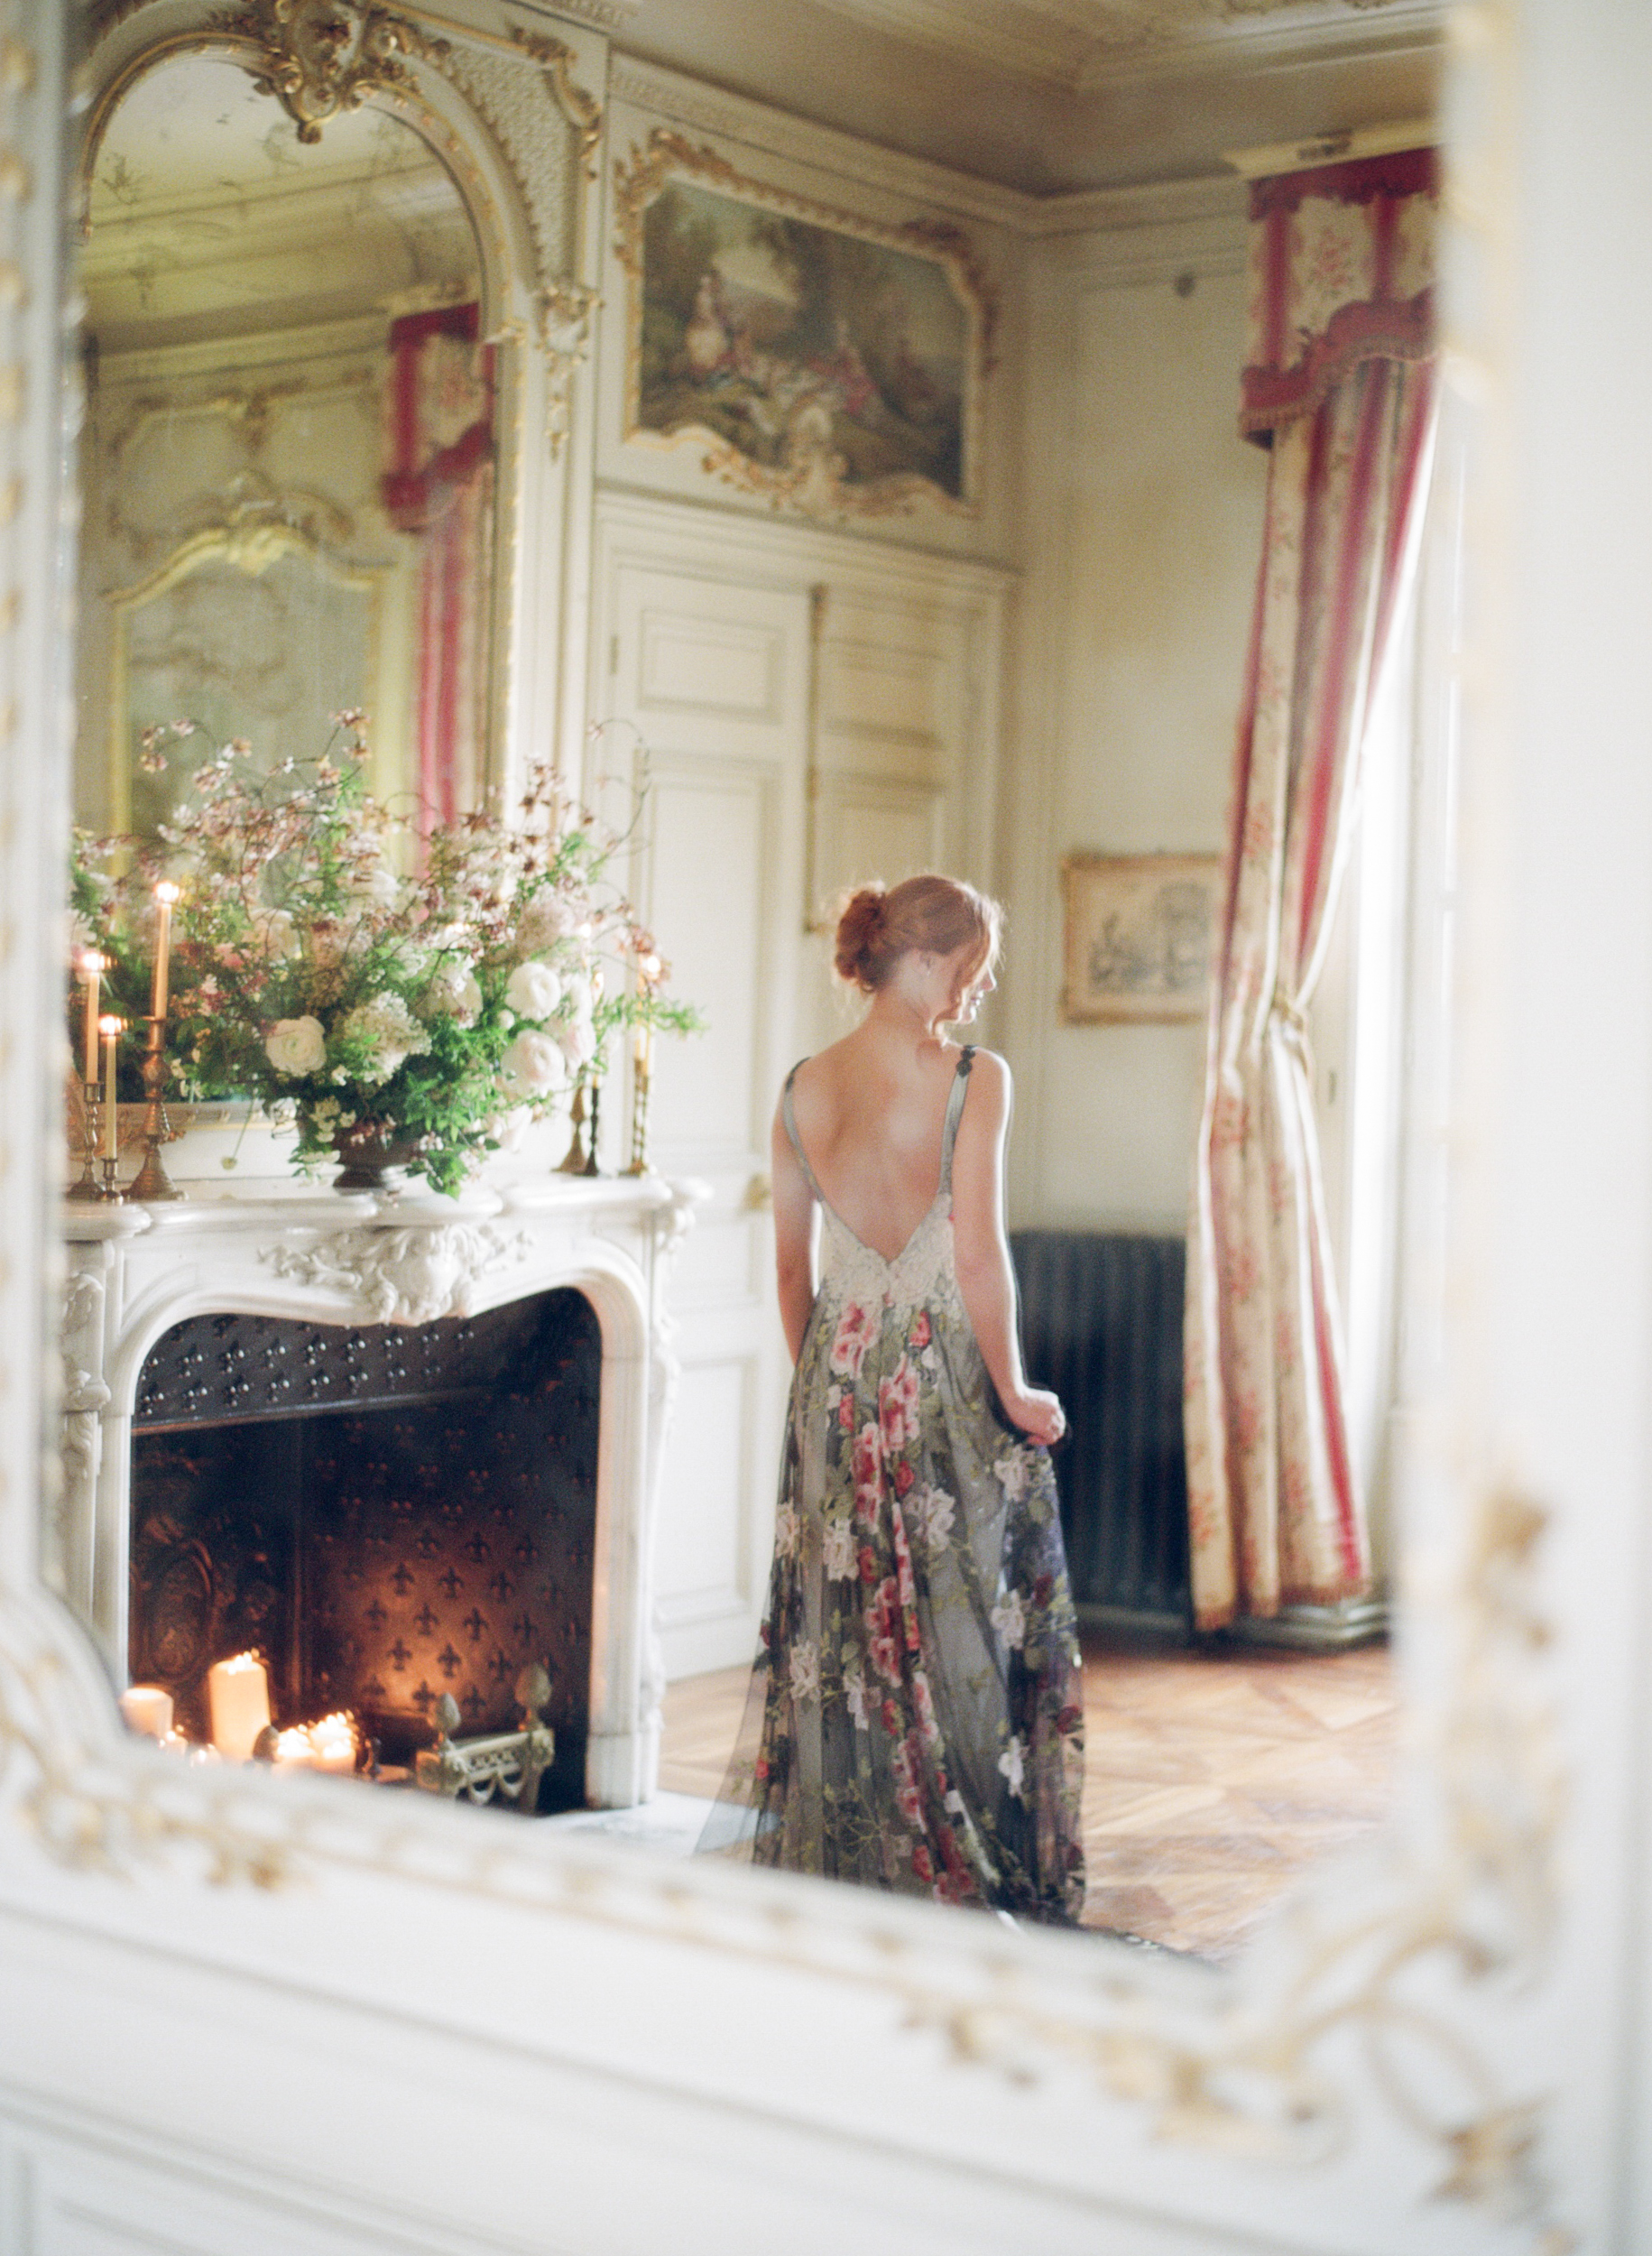 Bride's reflection in great hall mirror at Chateau de Varennes; Sylvie Gil Photography